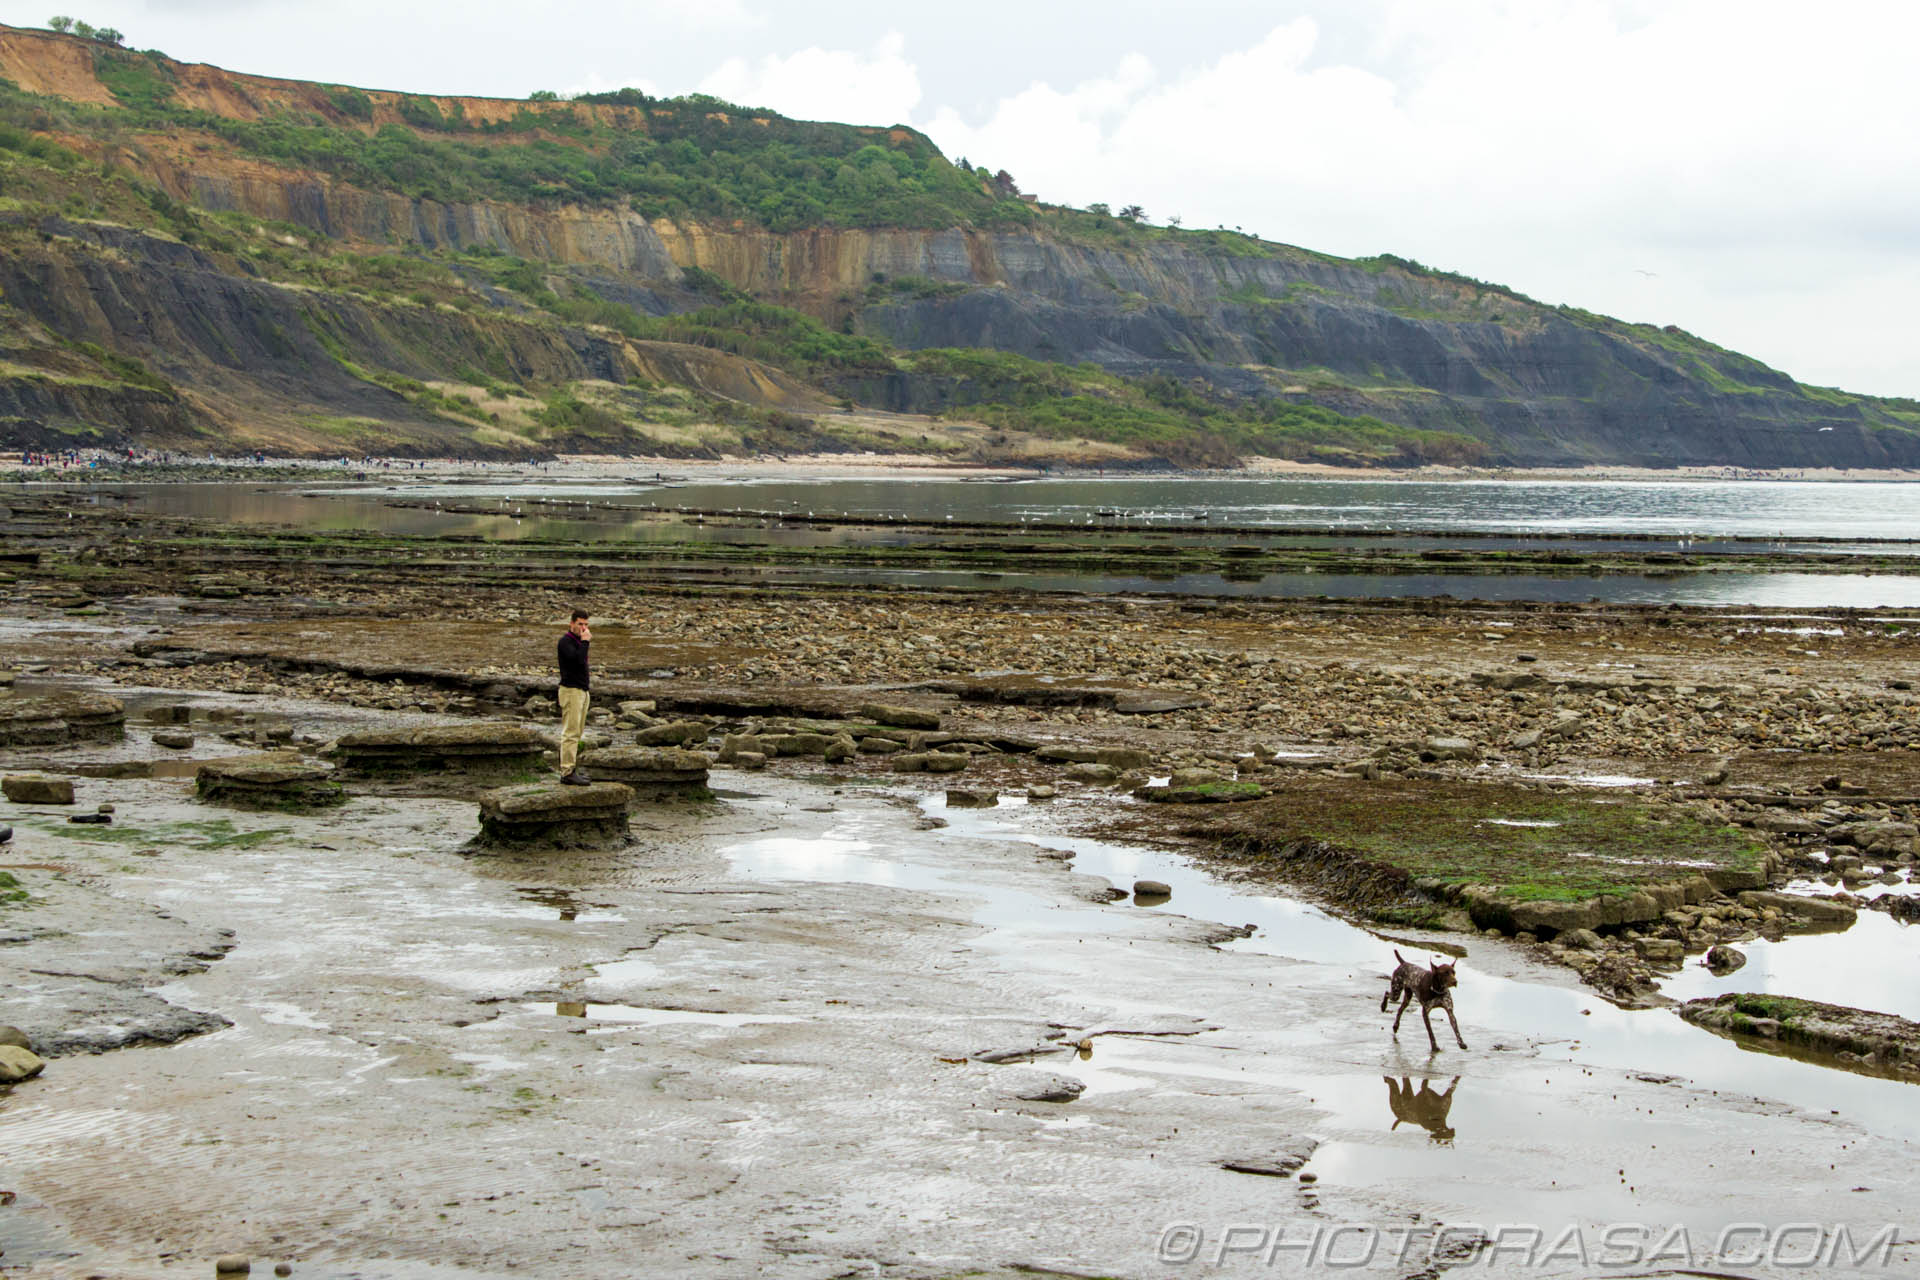 http://photorasa.com/walking-dog-jurassic-coast/dog-galloping-from-his-owner/